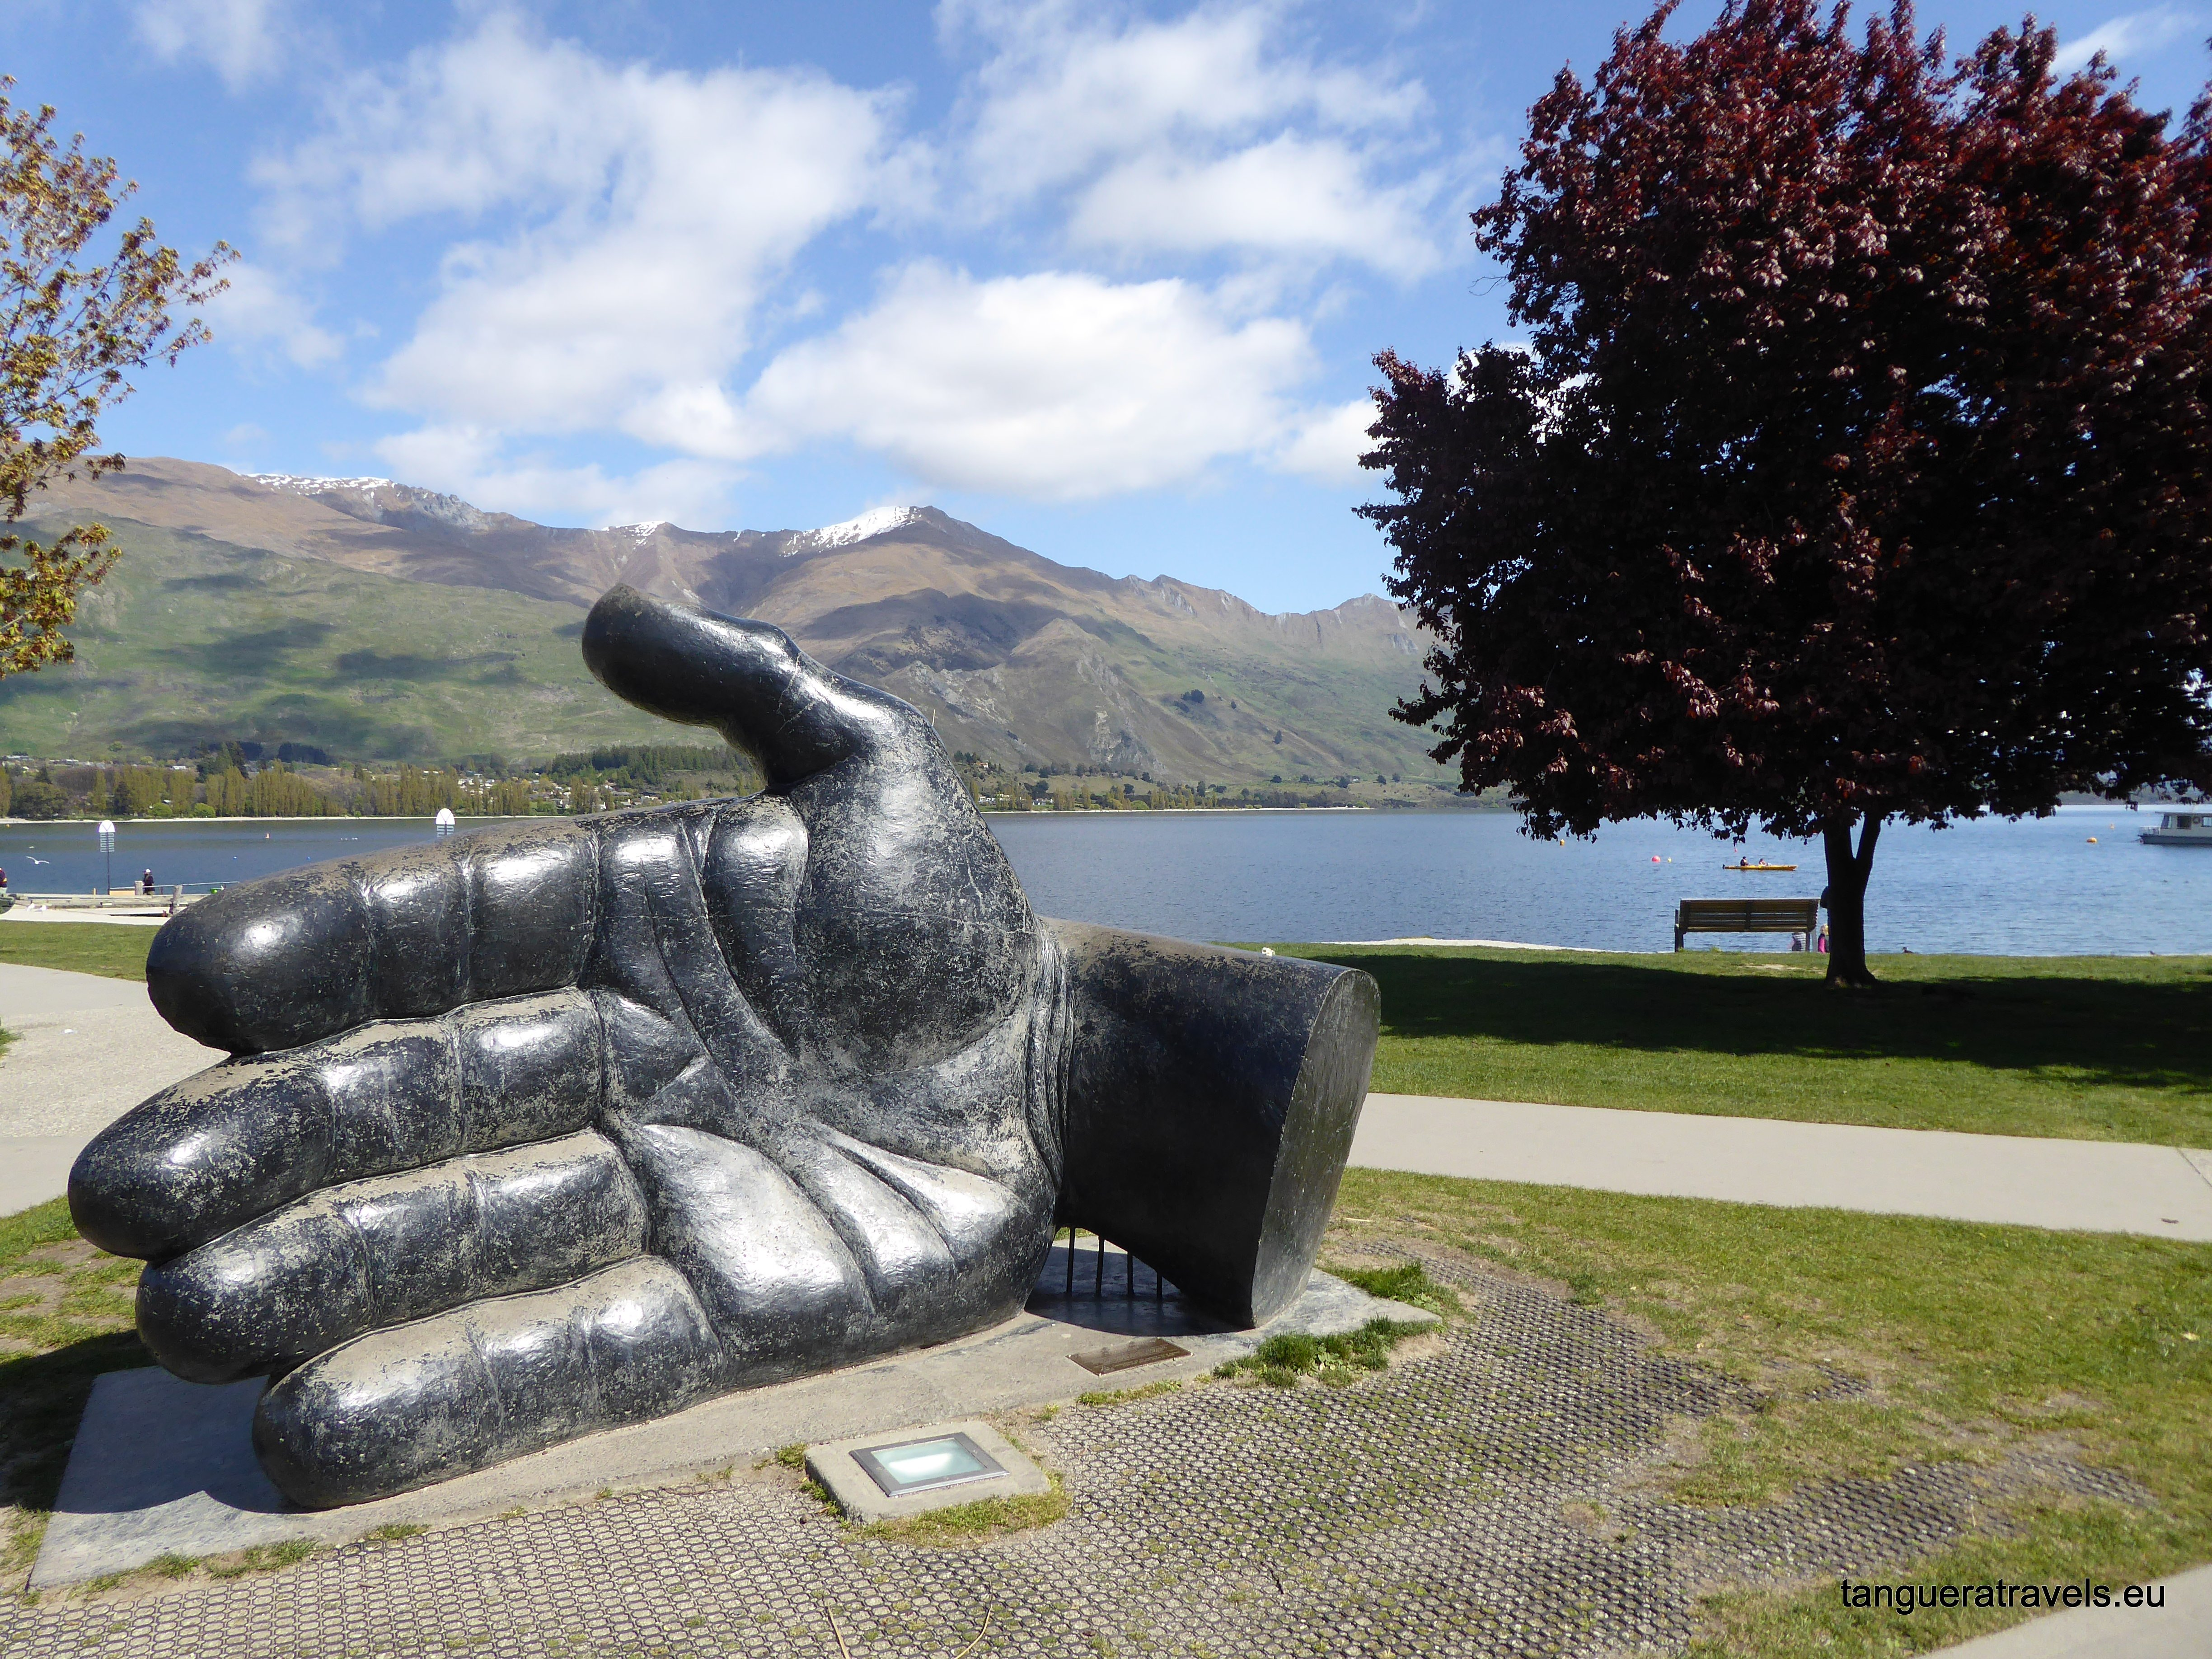 The hand that nurtures by Llew Summers, Wanaka